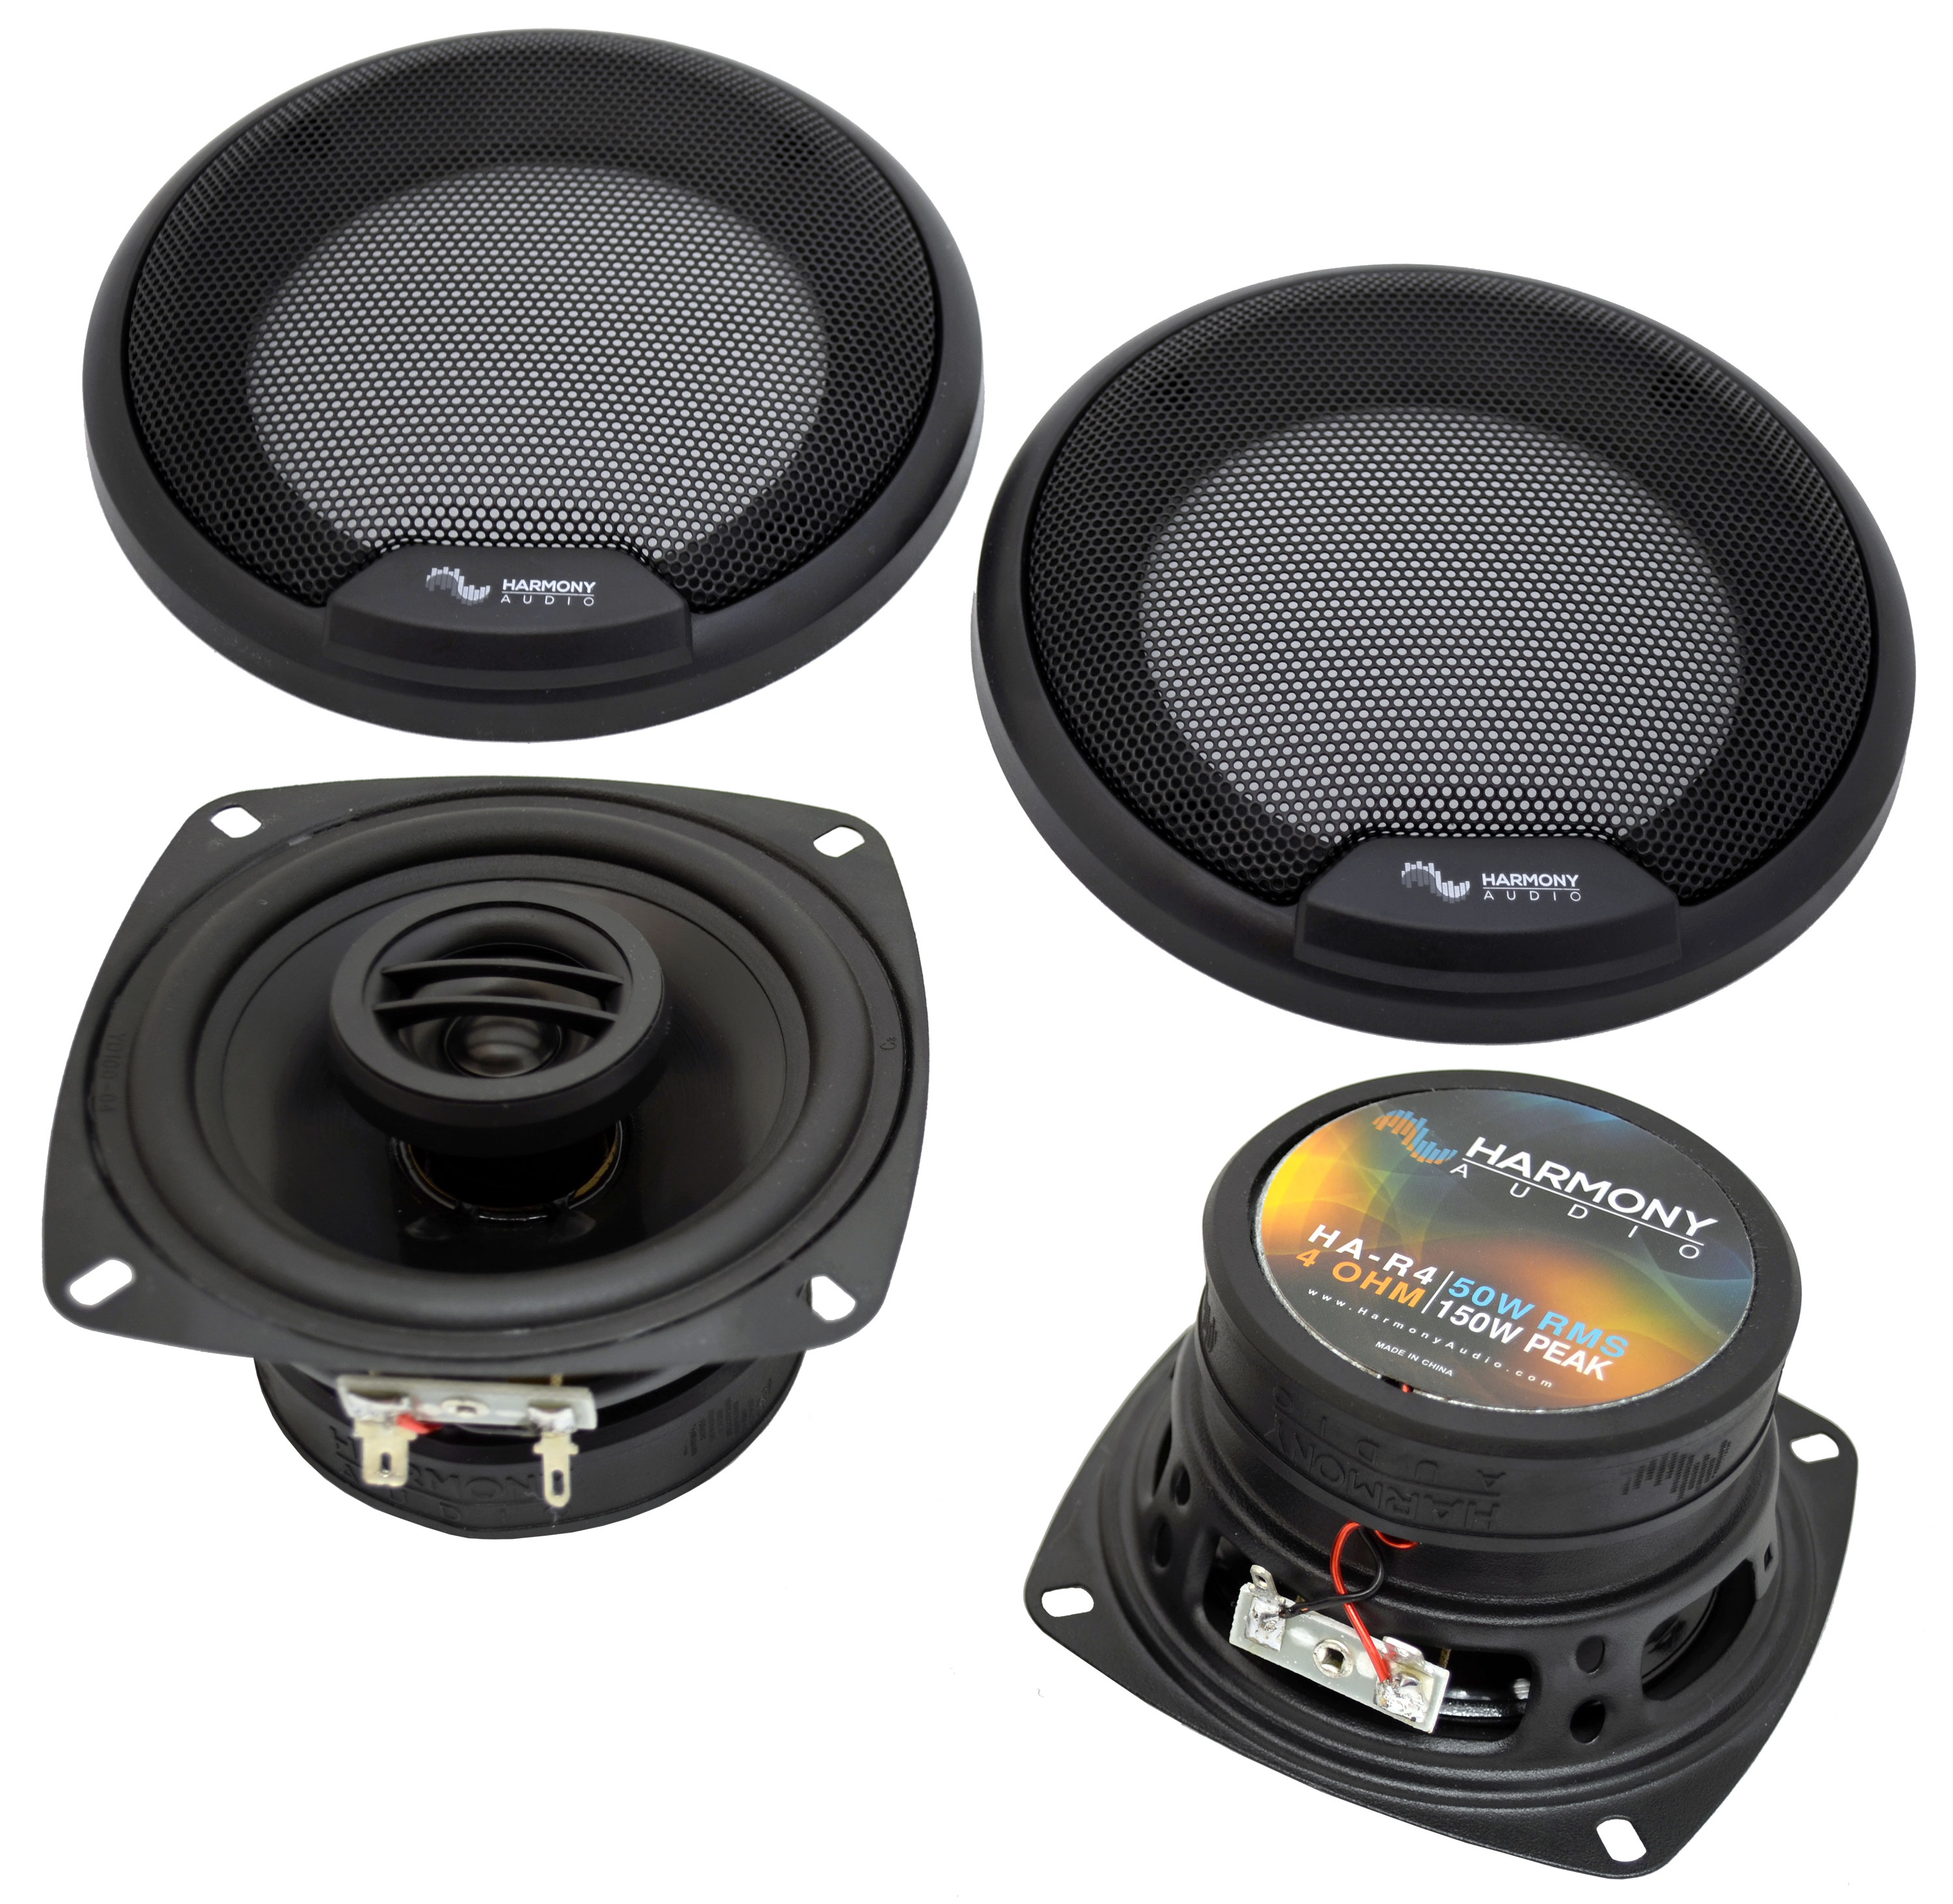 Fits Cadillac Seville 1996 Front Door Replacement Harmony HA-R4 Speakers